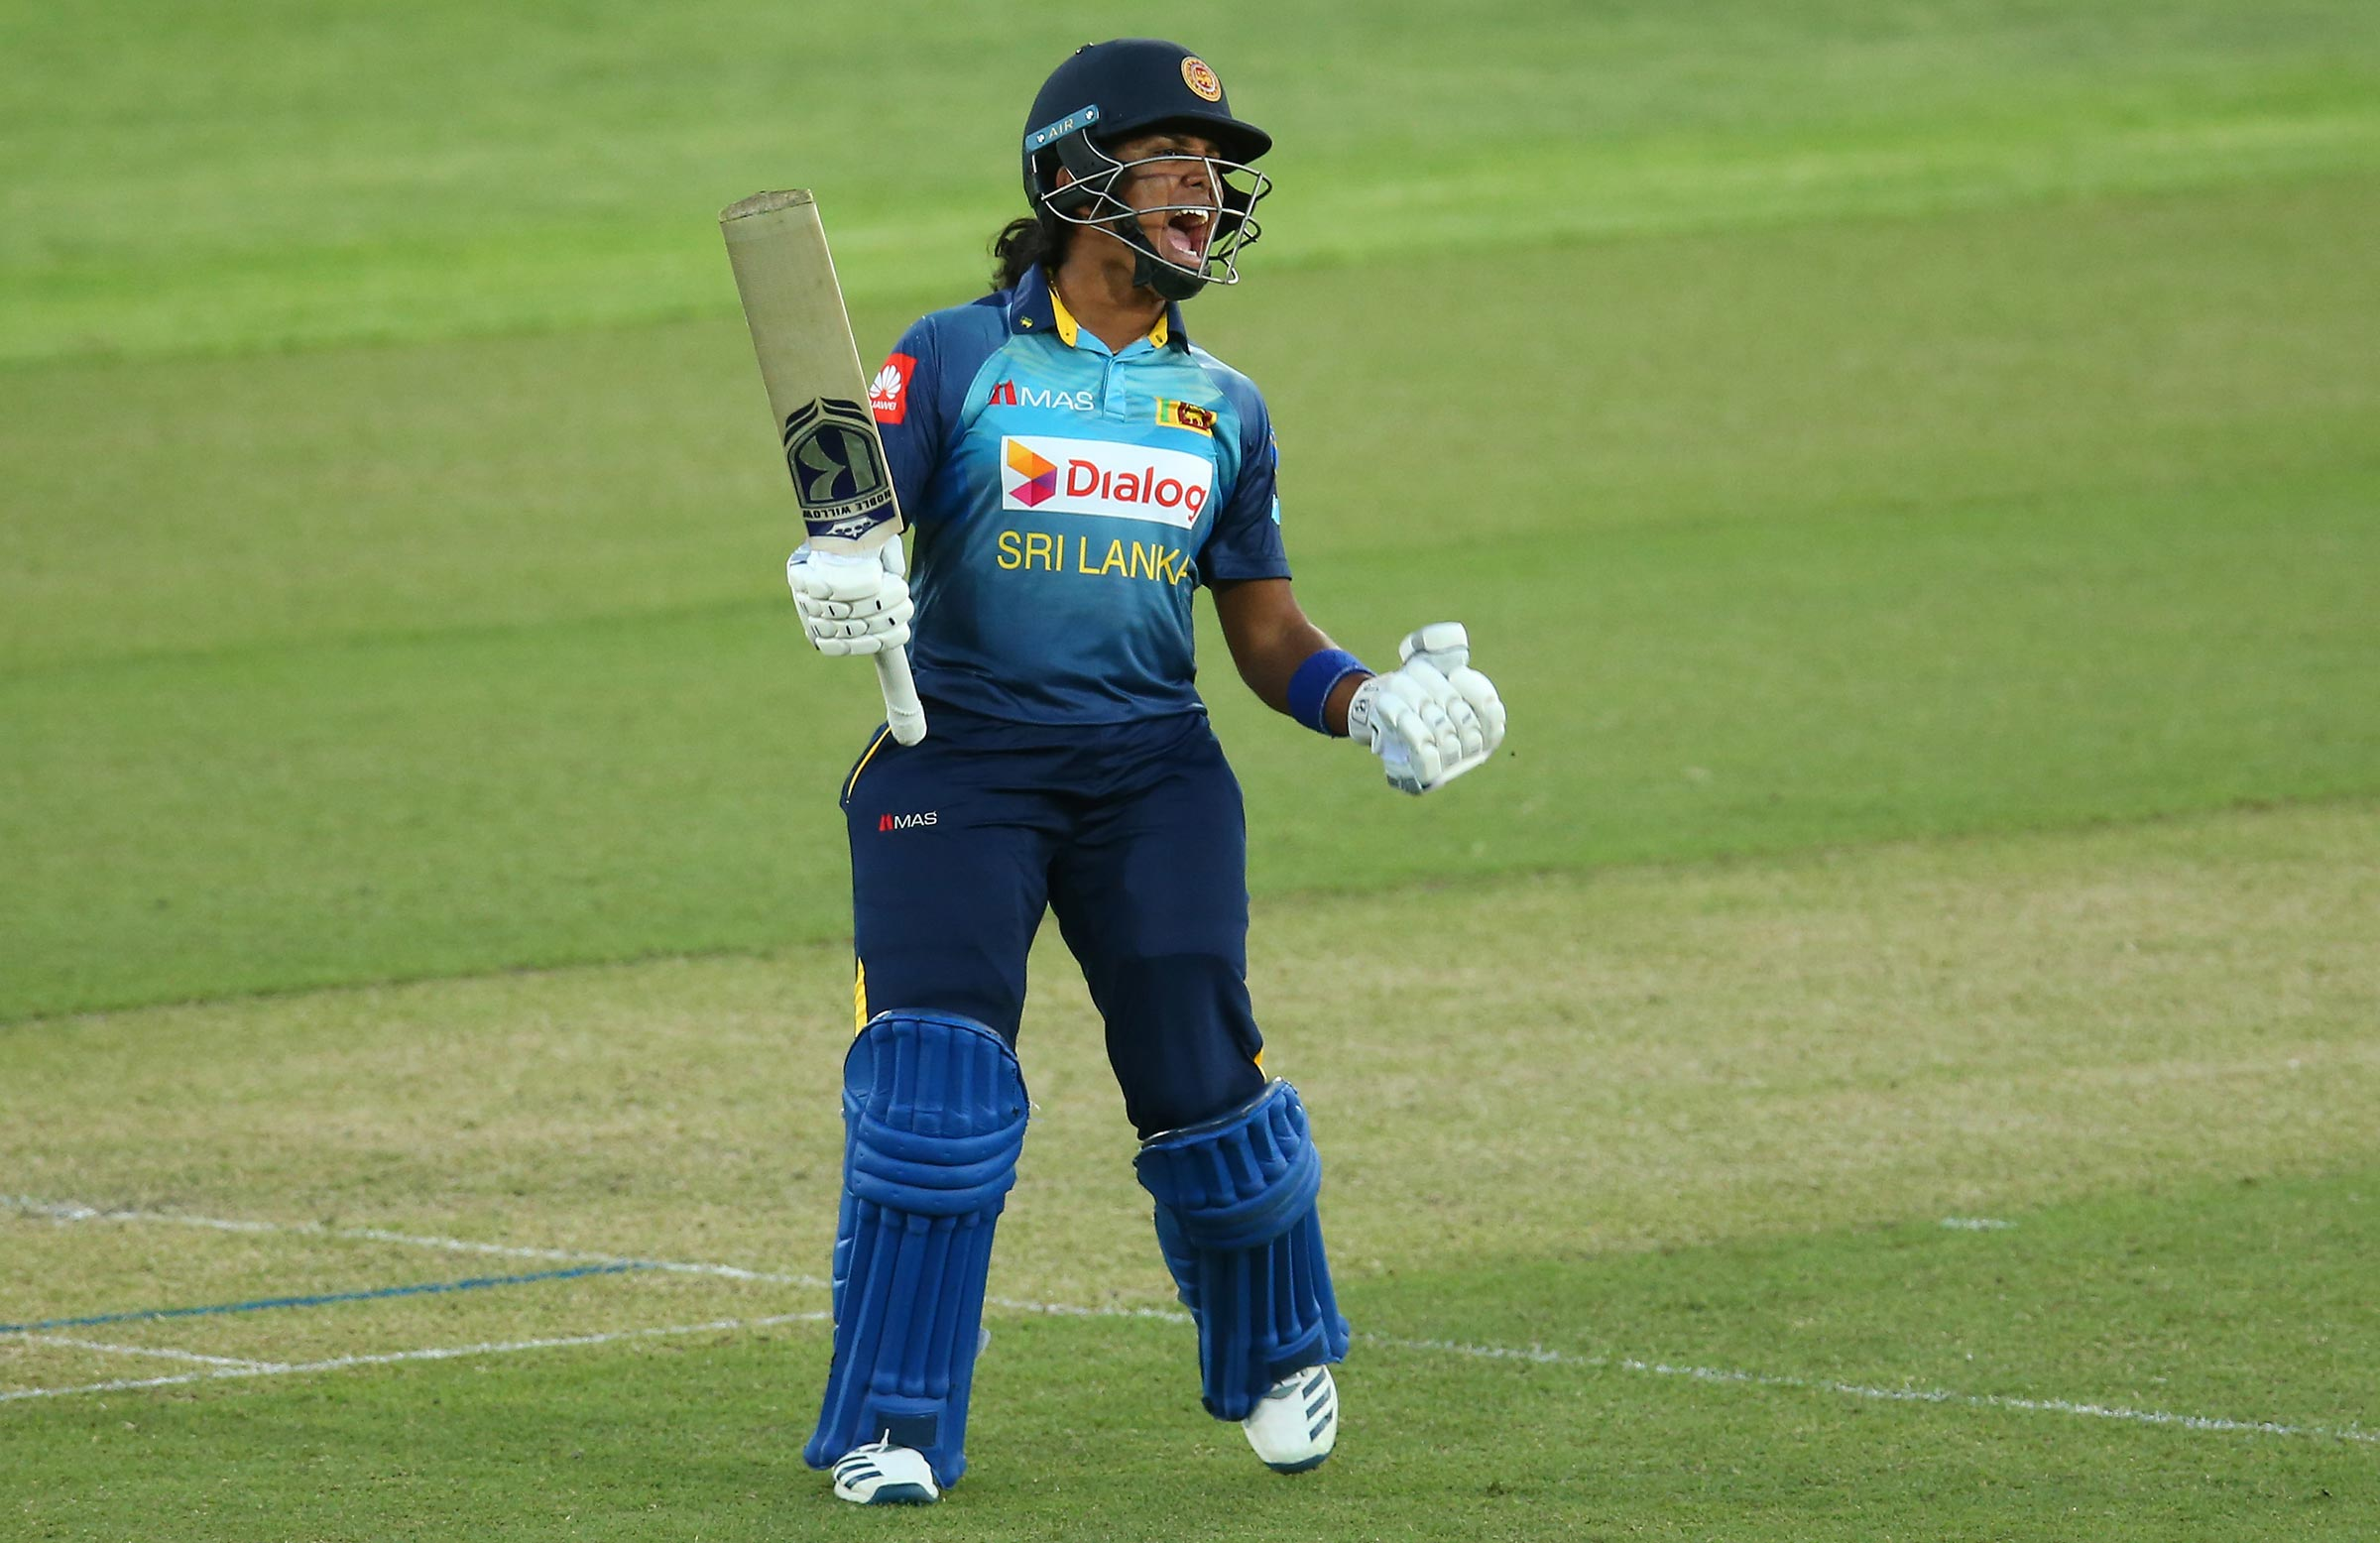 Athapaththu celebrates her T20I century against Australia // Getty